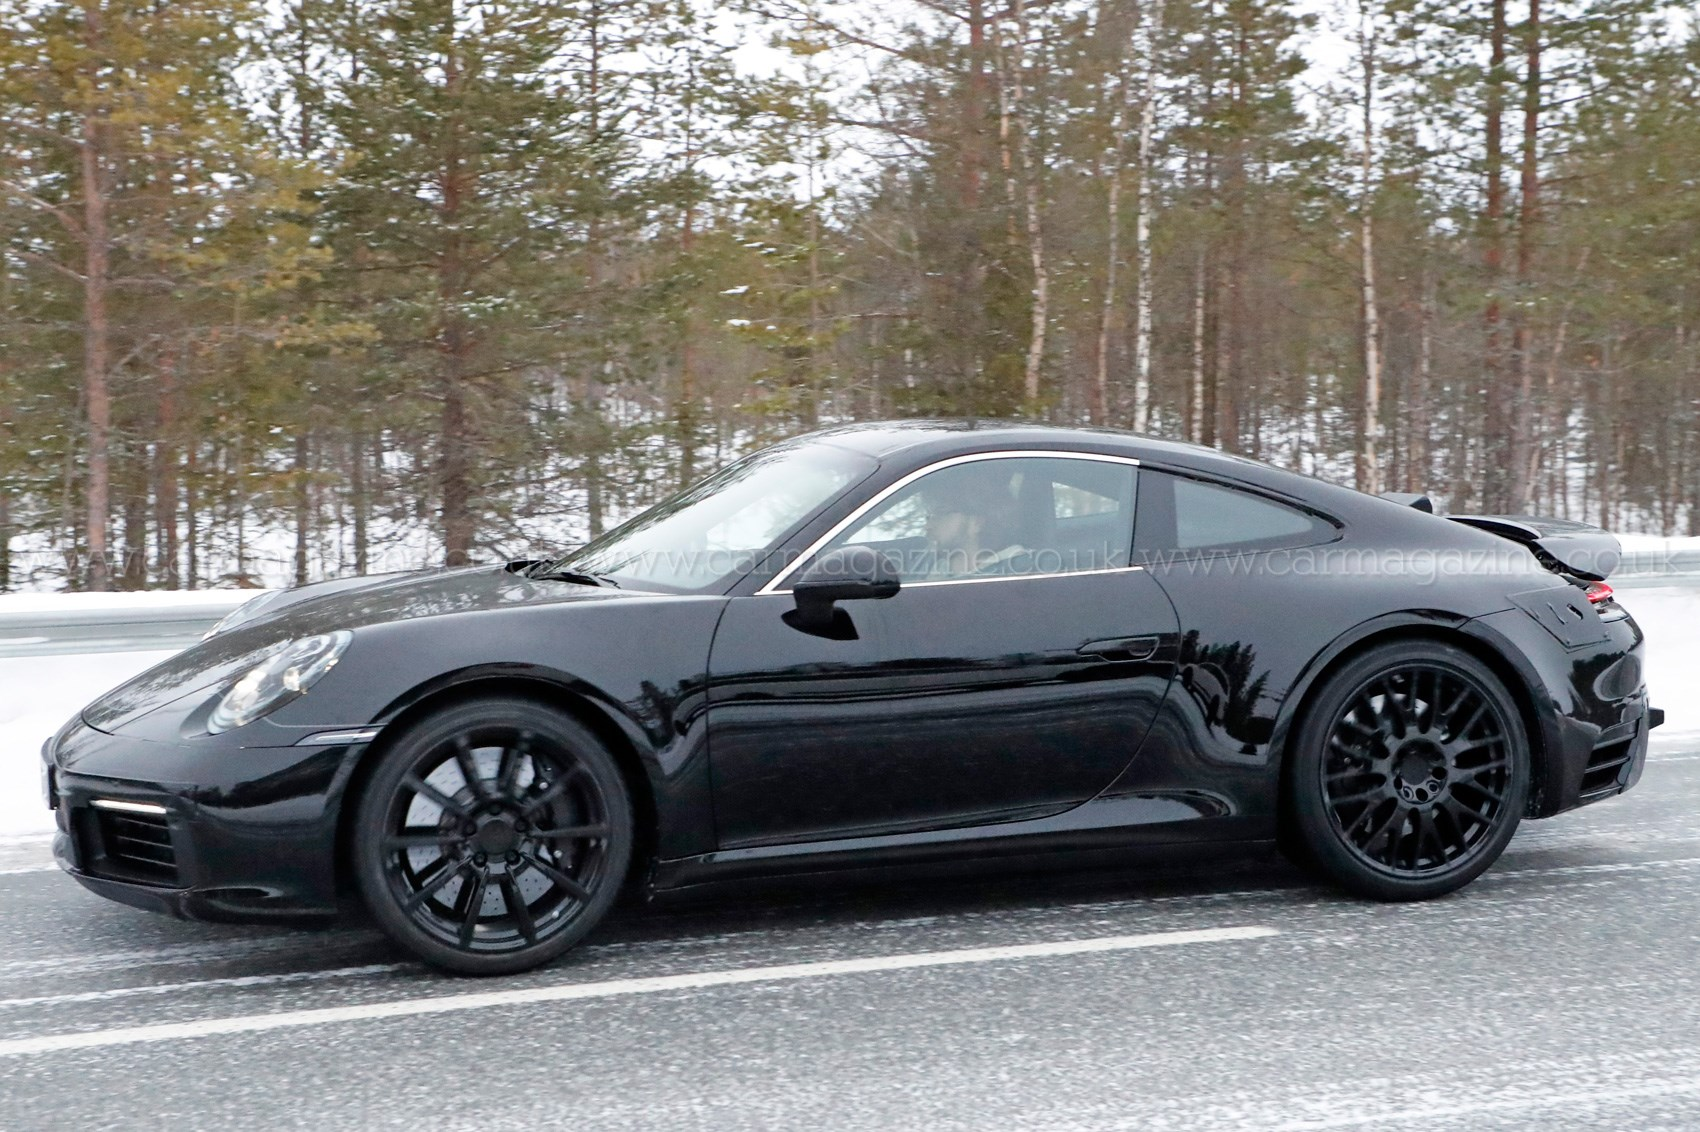 Porsche 911 992 Generation Spy Shots And First Details By Car Magazine